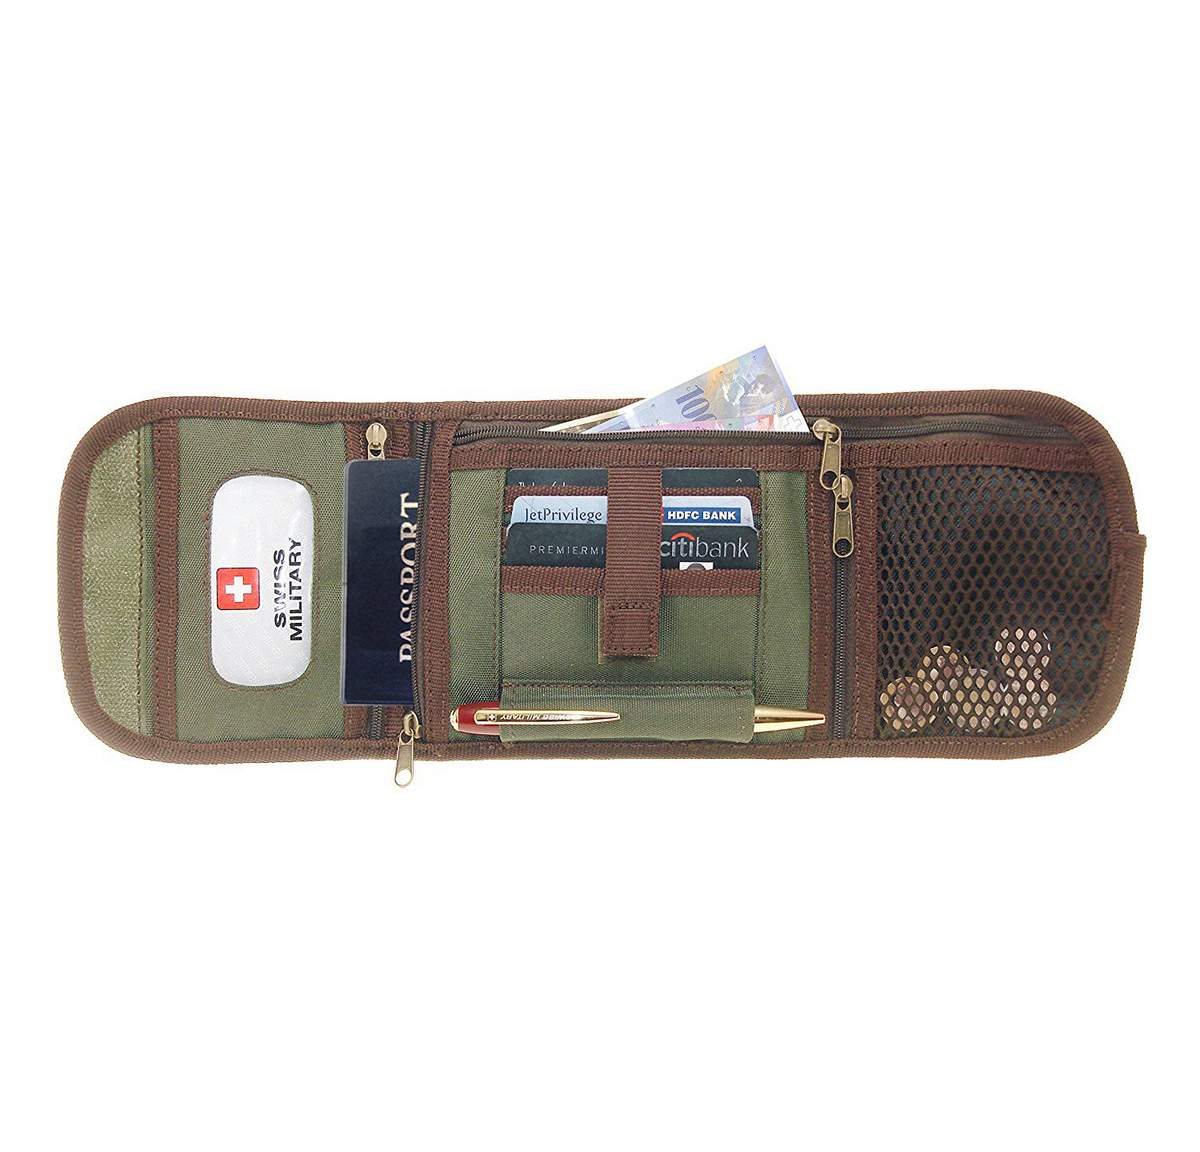 Swiss Military TW3 Travel Wallet